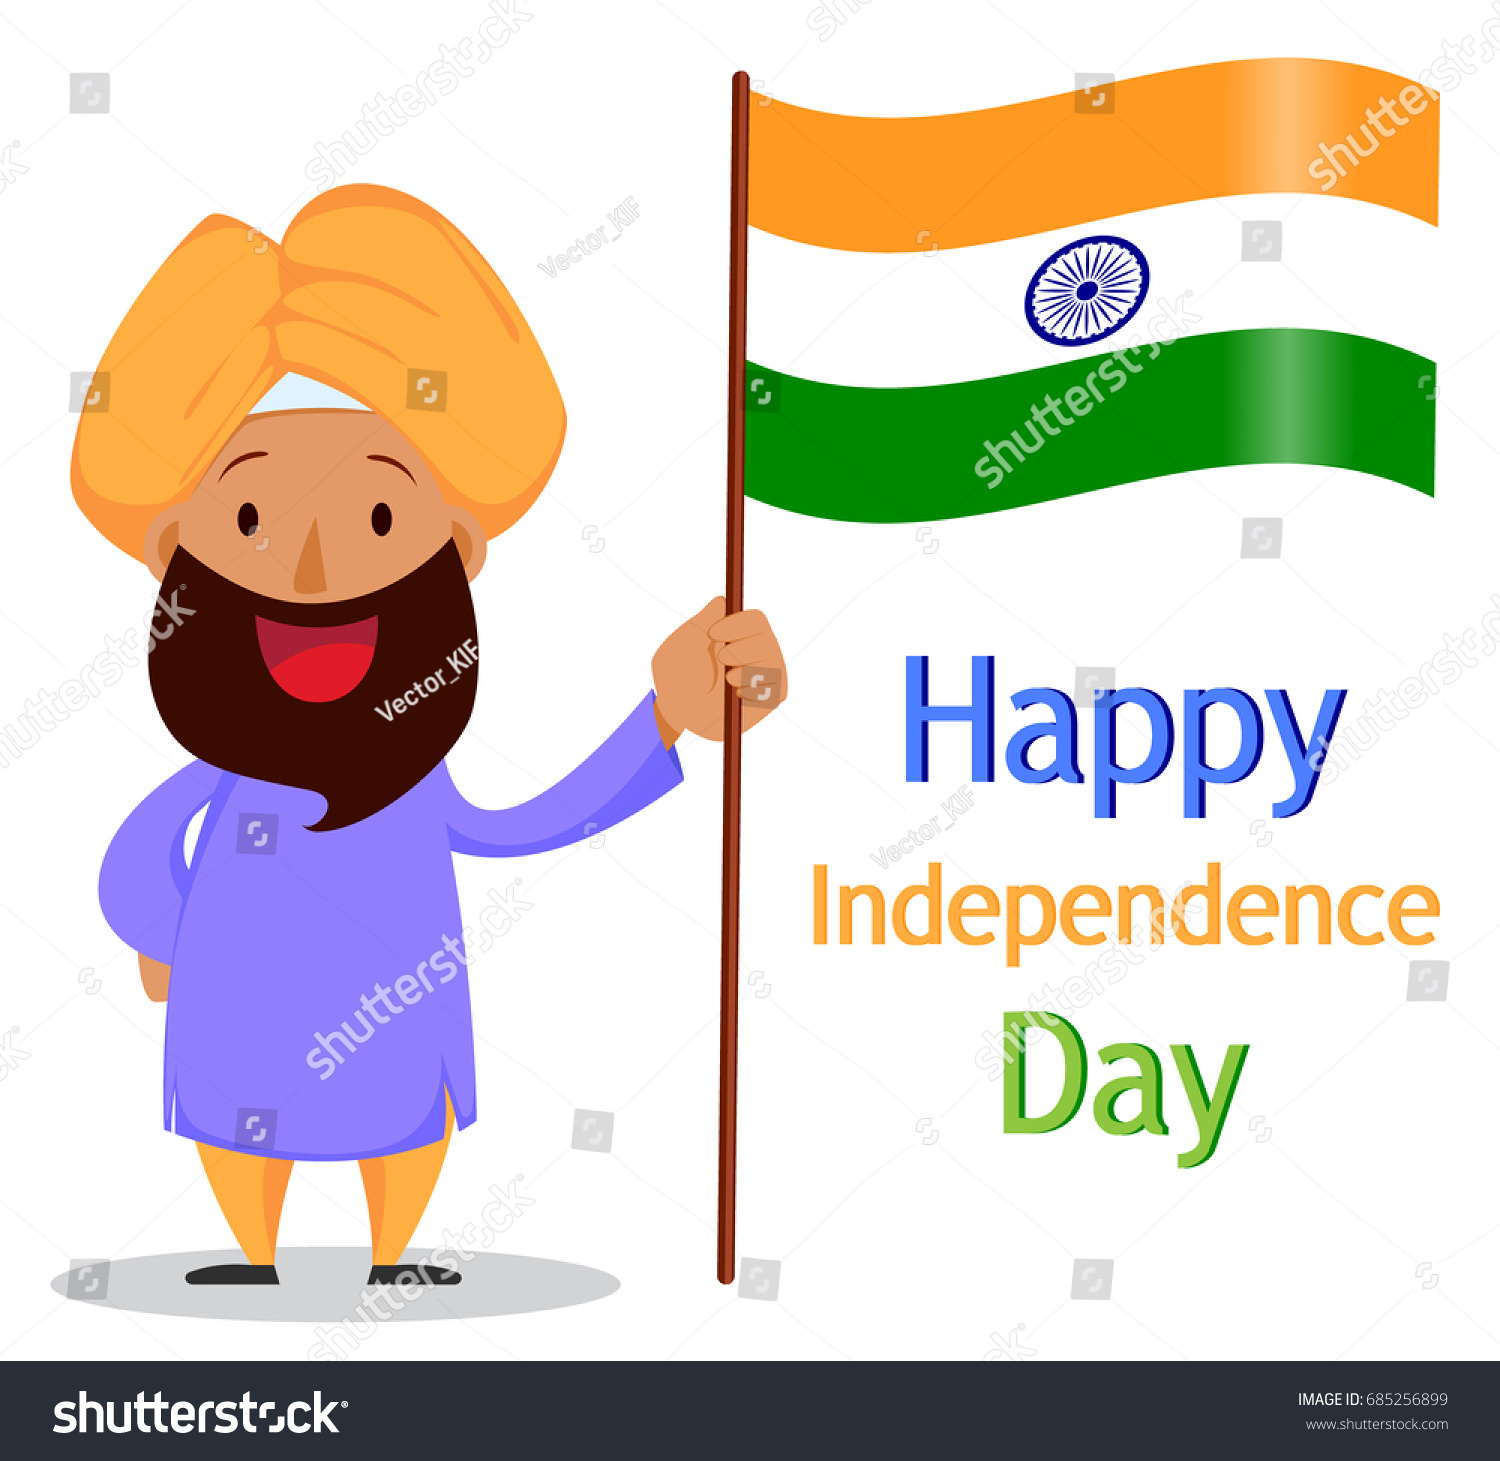 Independence Day India Greeting Card Funny Stock Vector Royalty